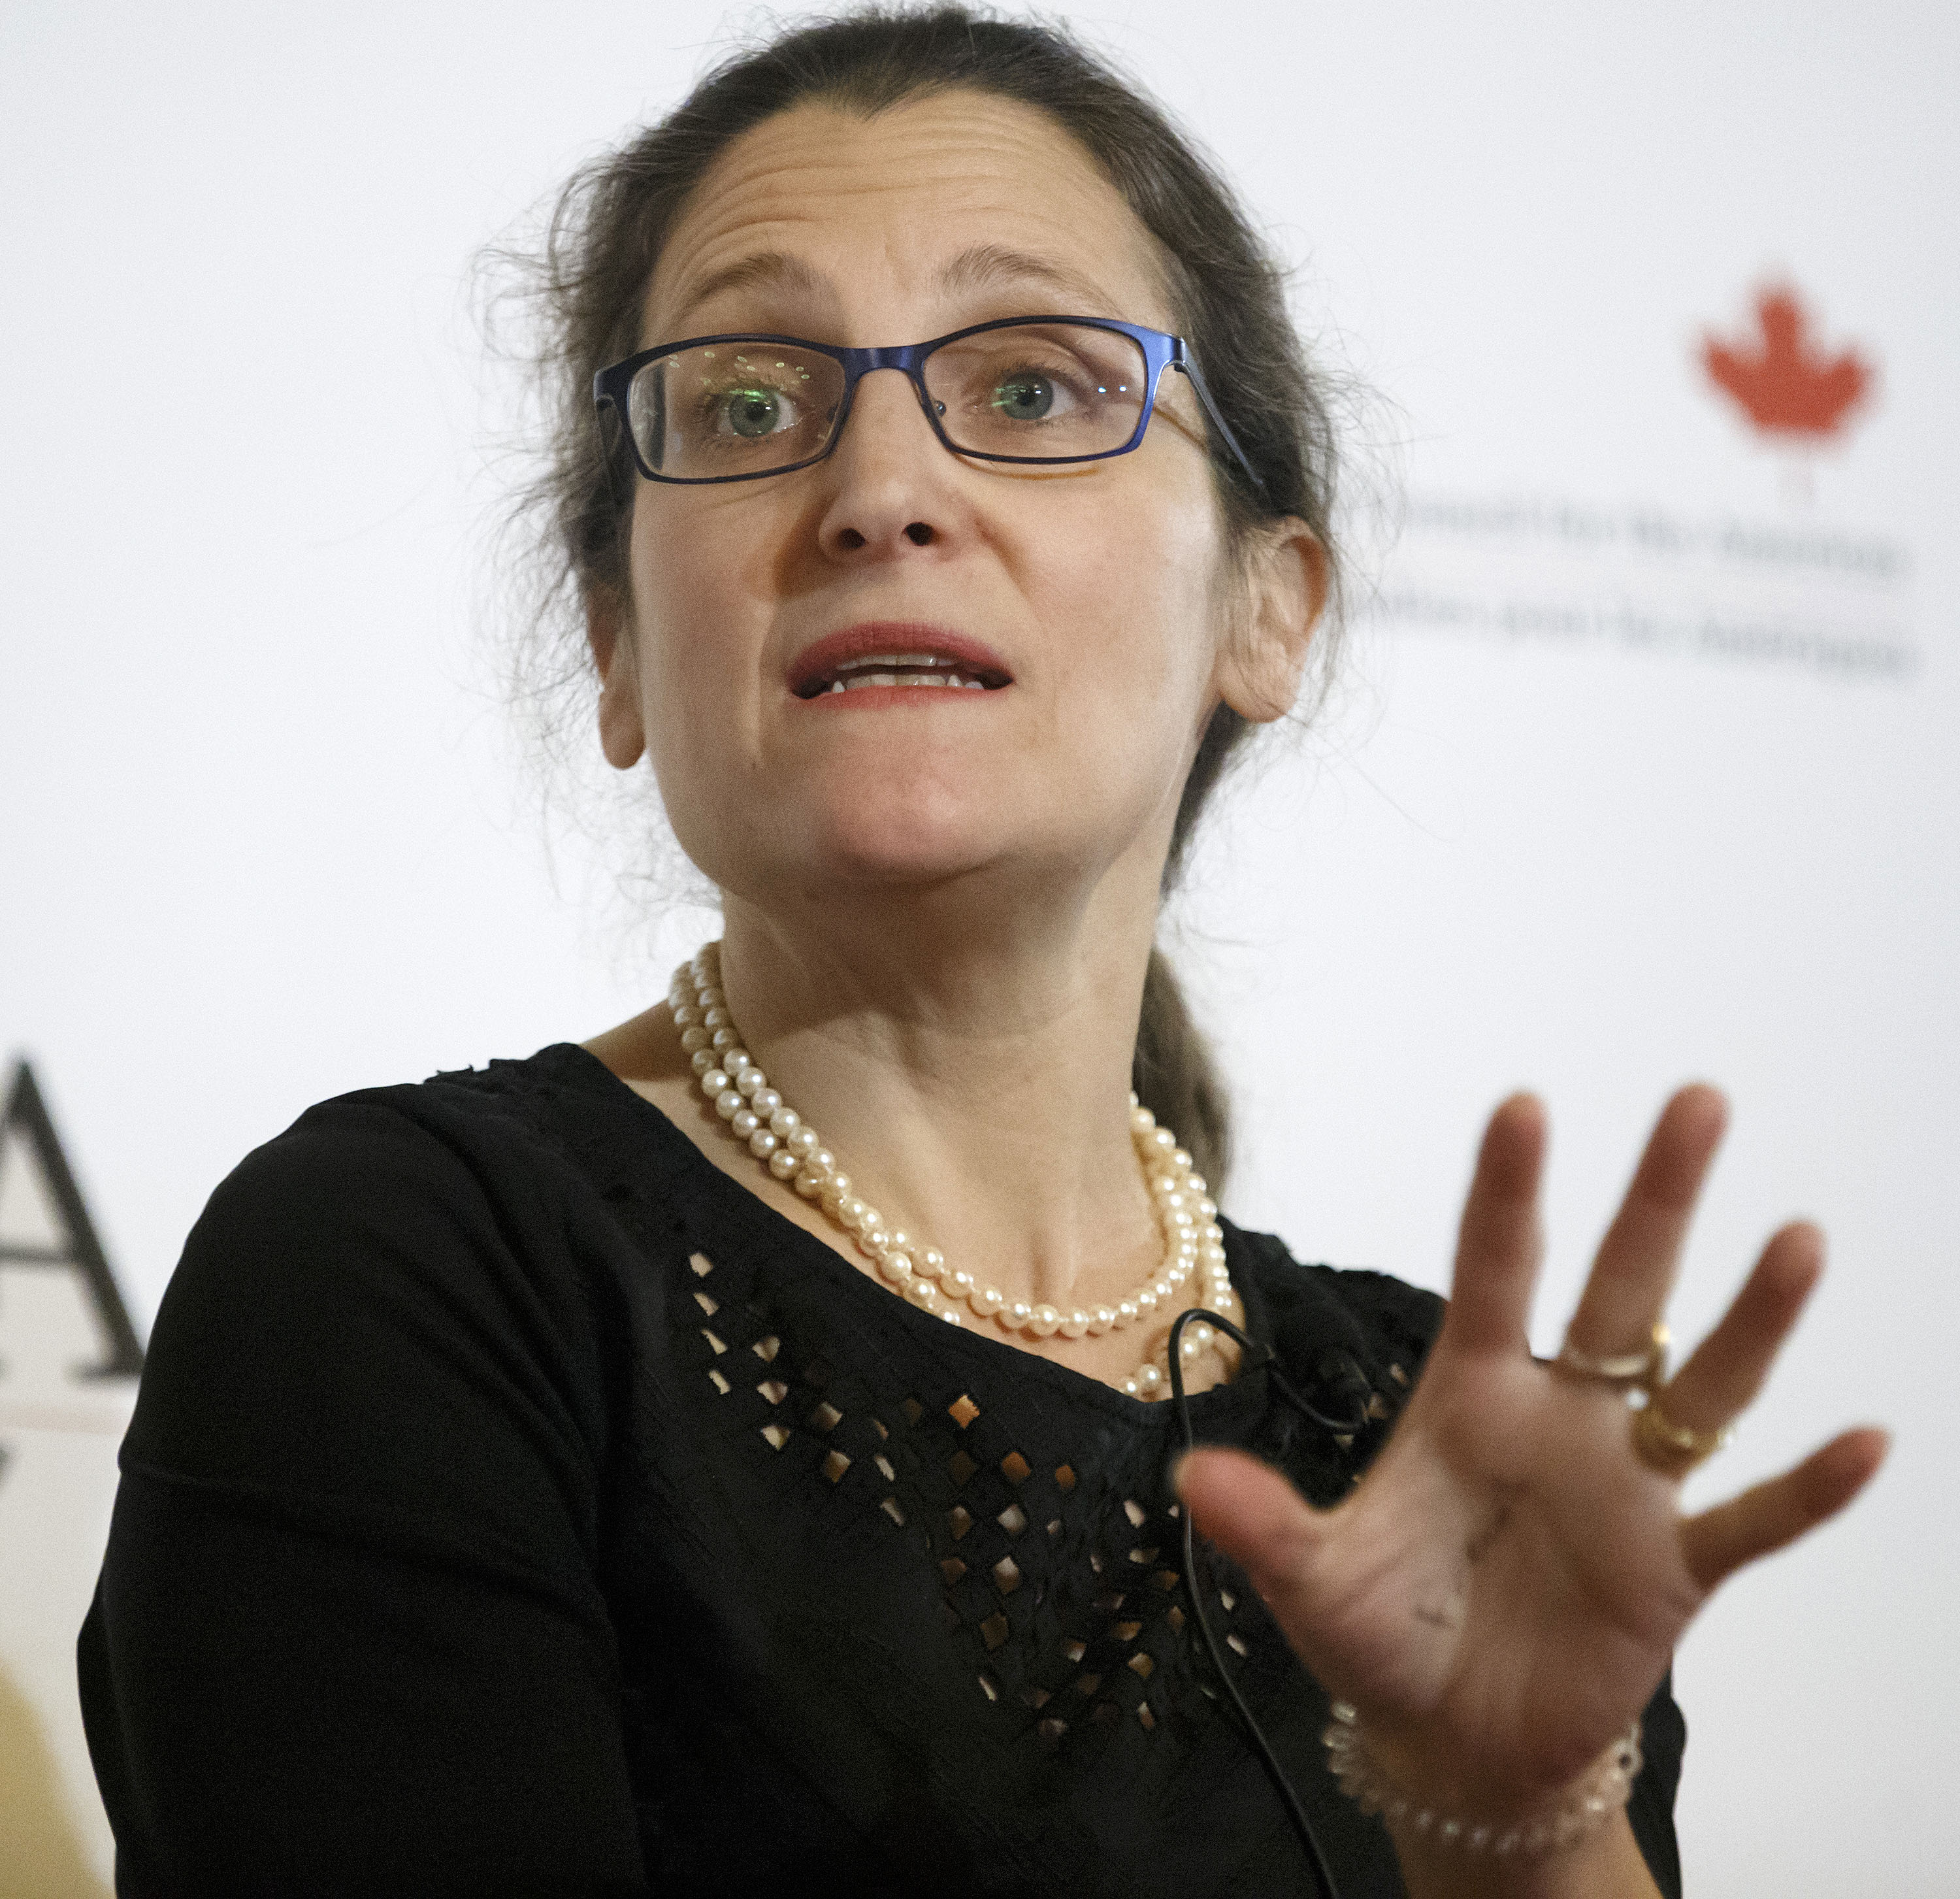 Canada's foreign minister says Russia is spreading disinformation about her grandfather